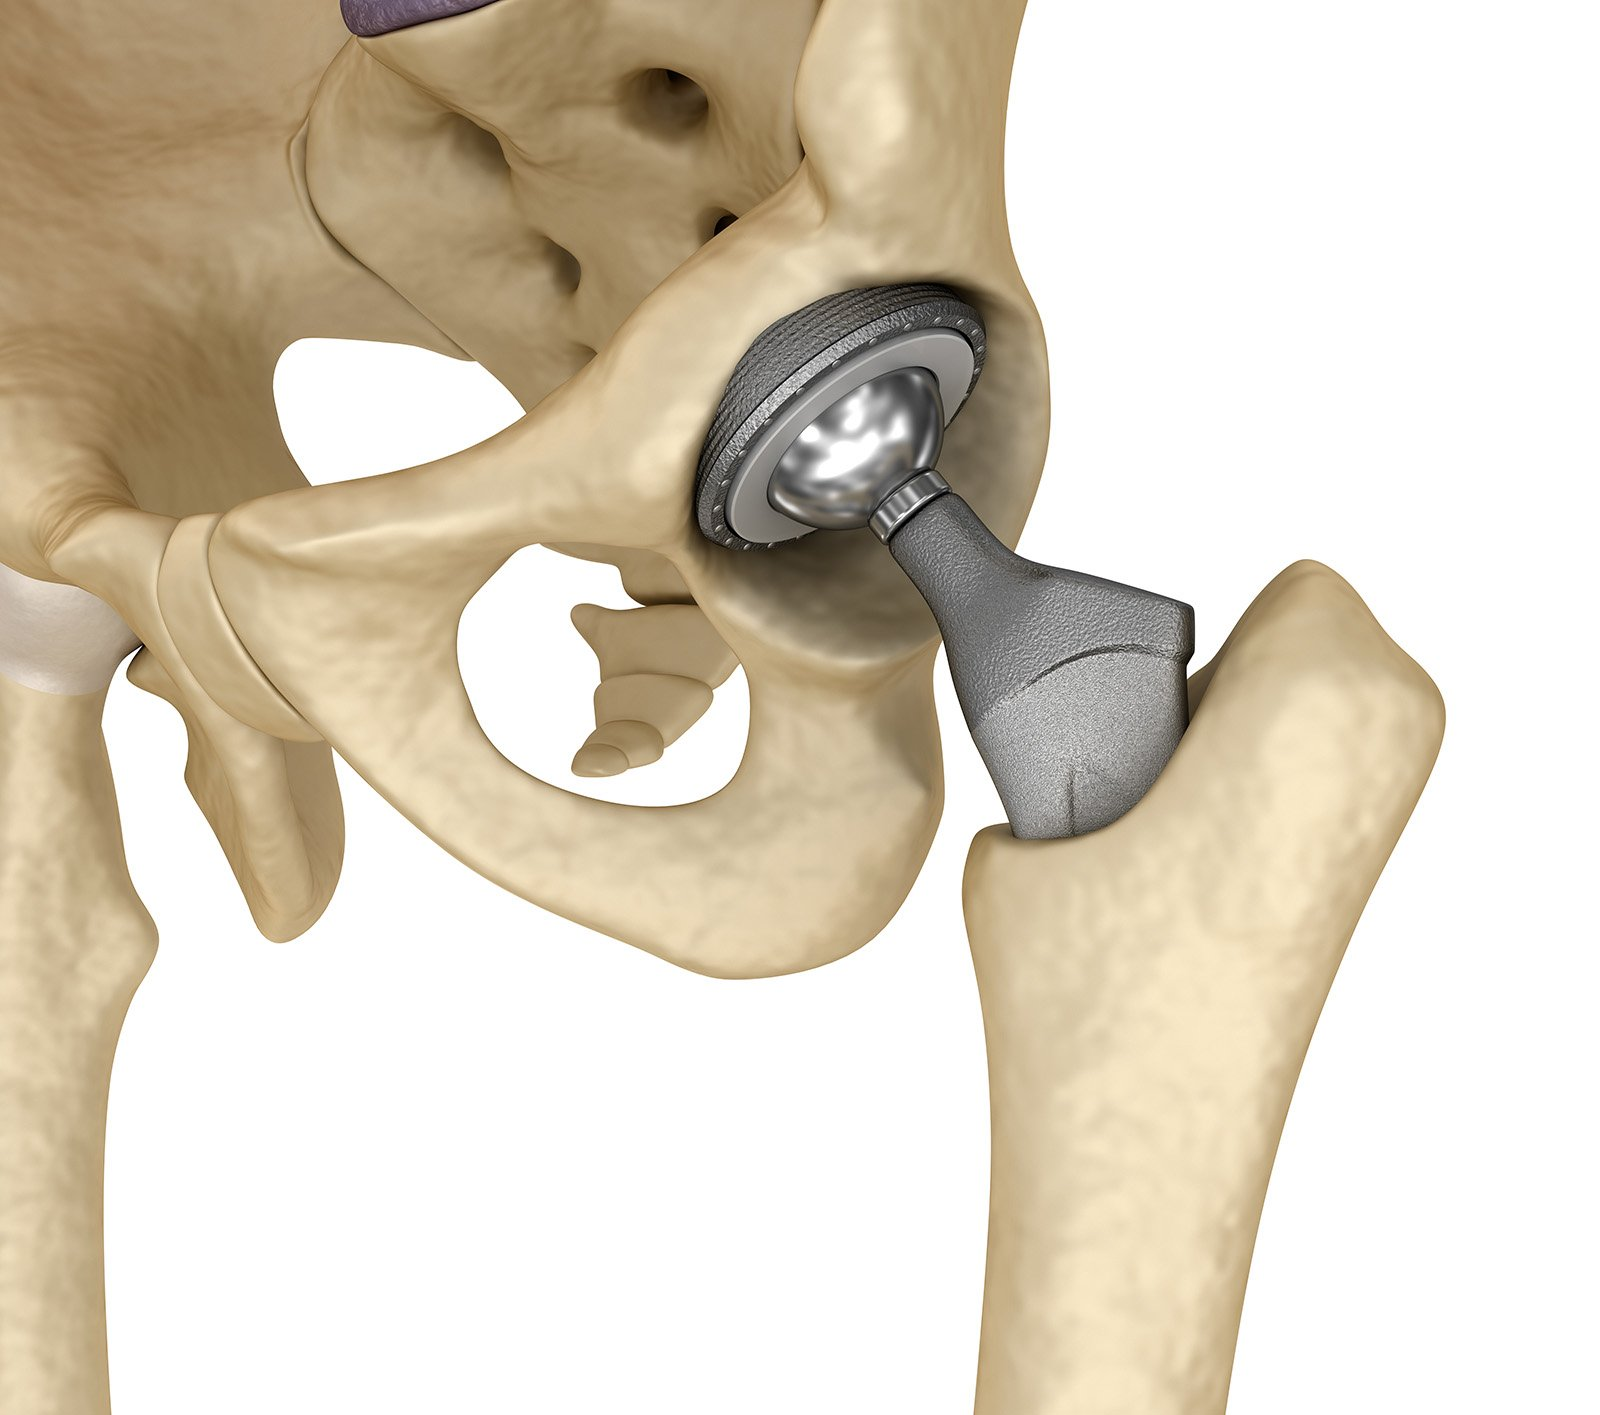 Product Liability practice - Hip Replacement slide